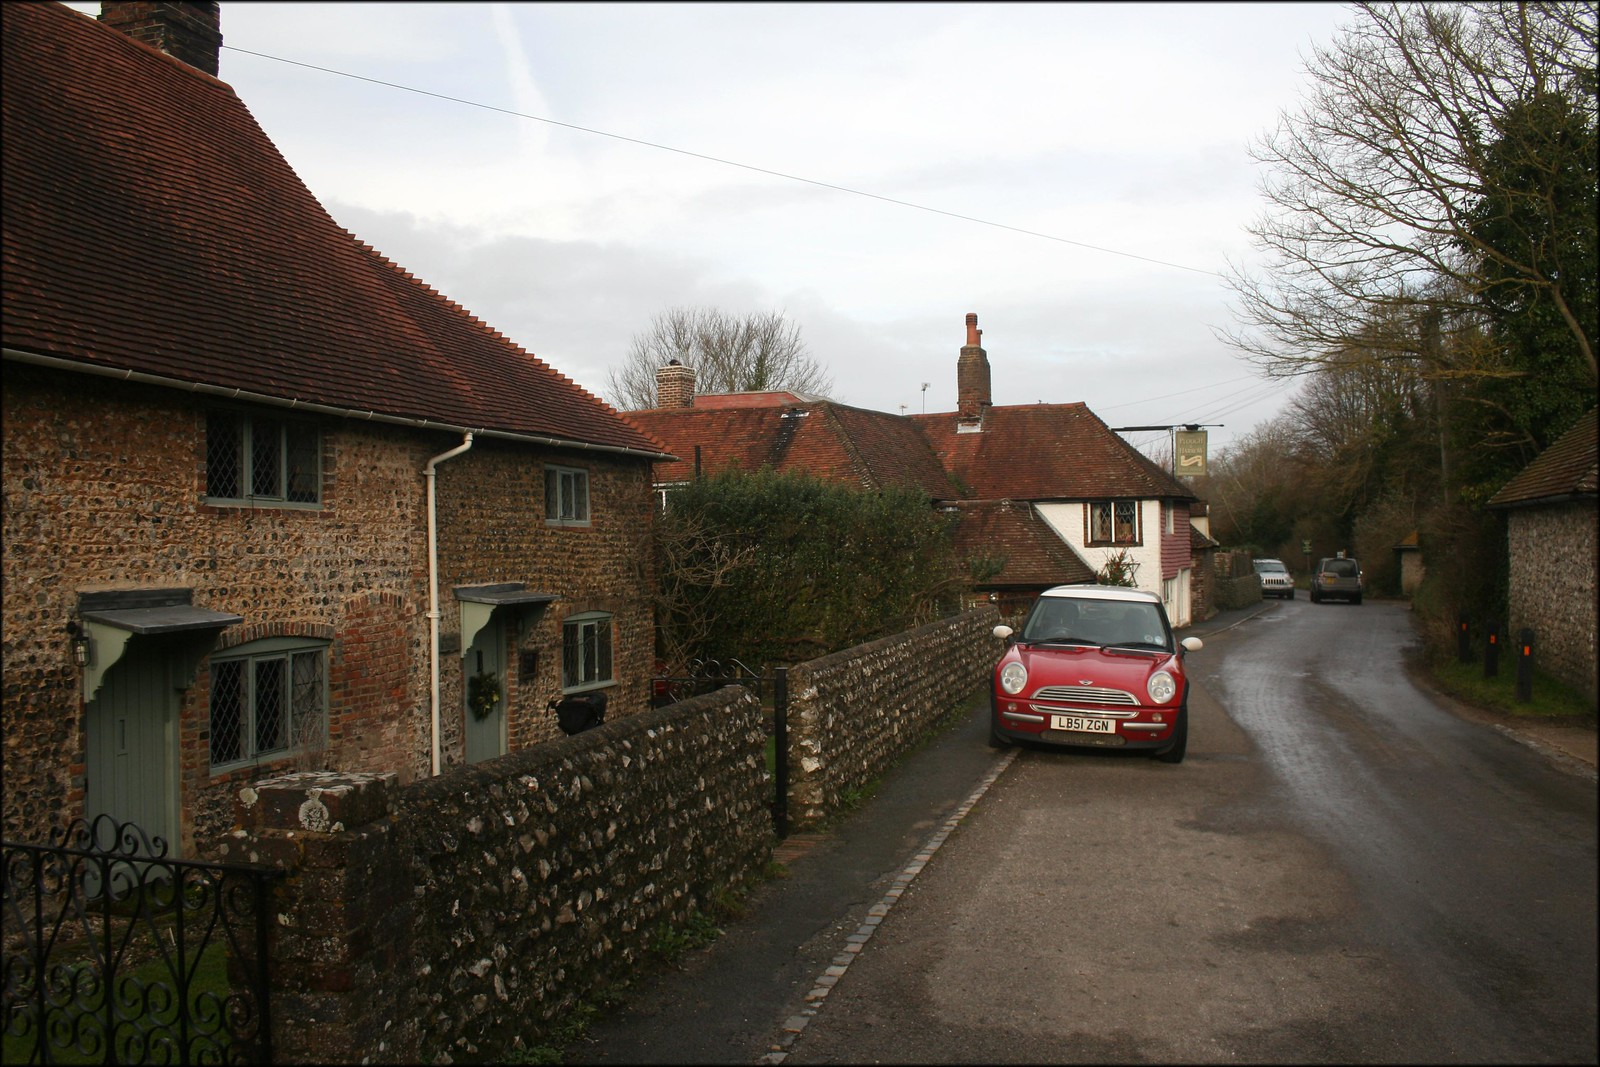 Litlington